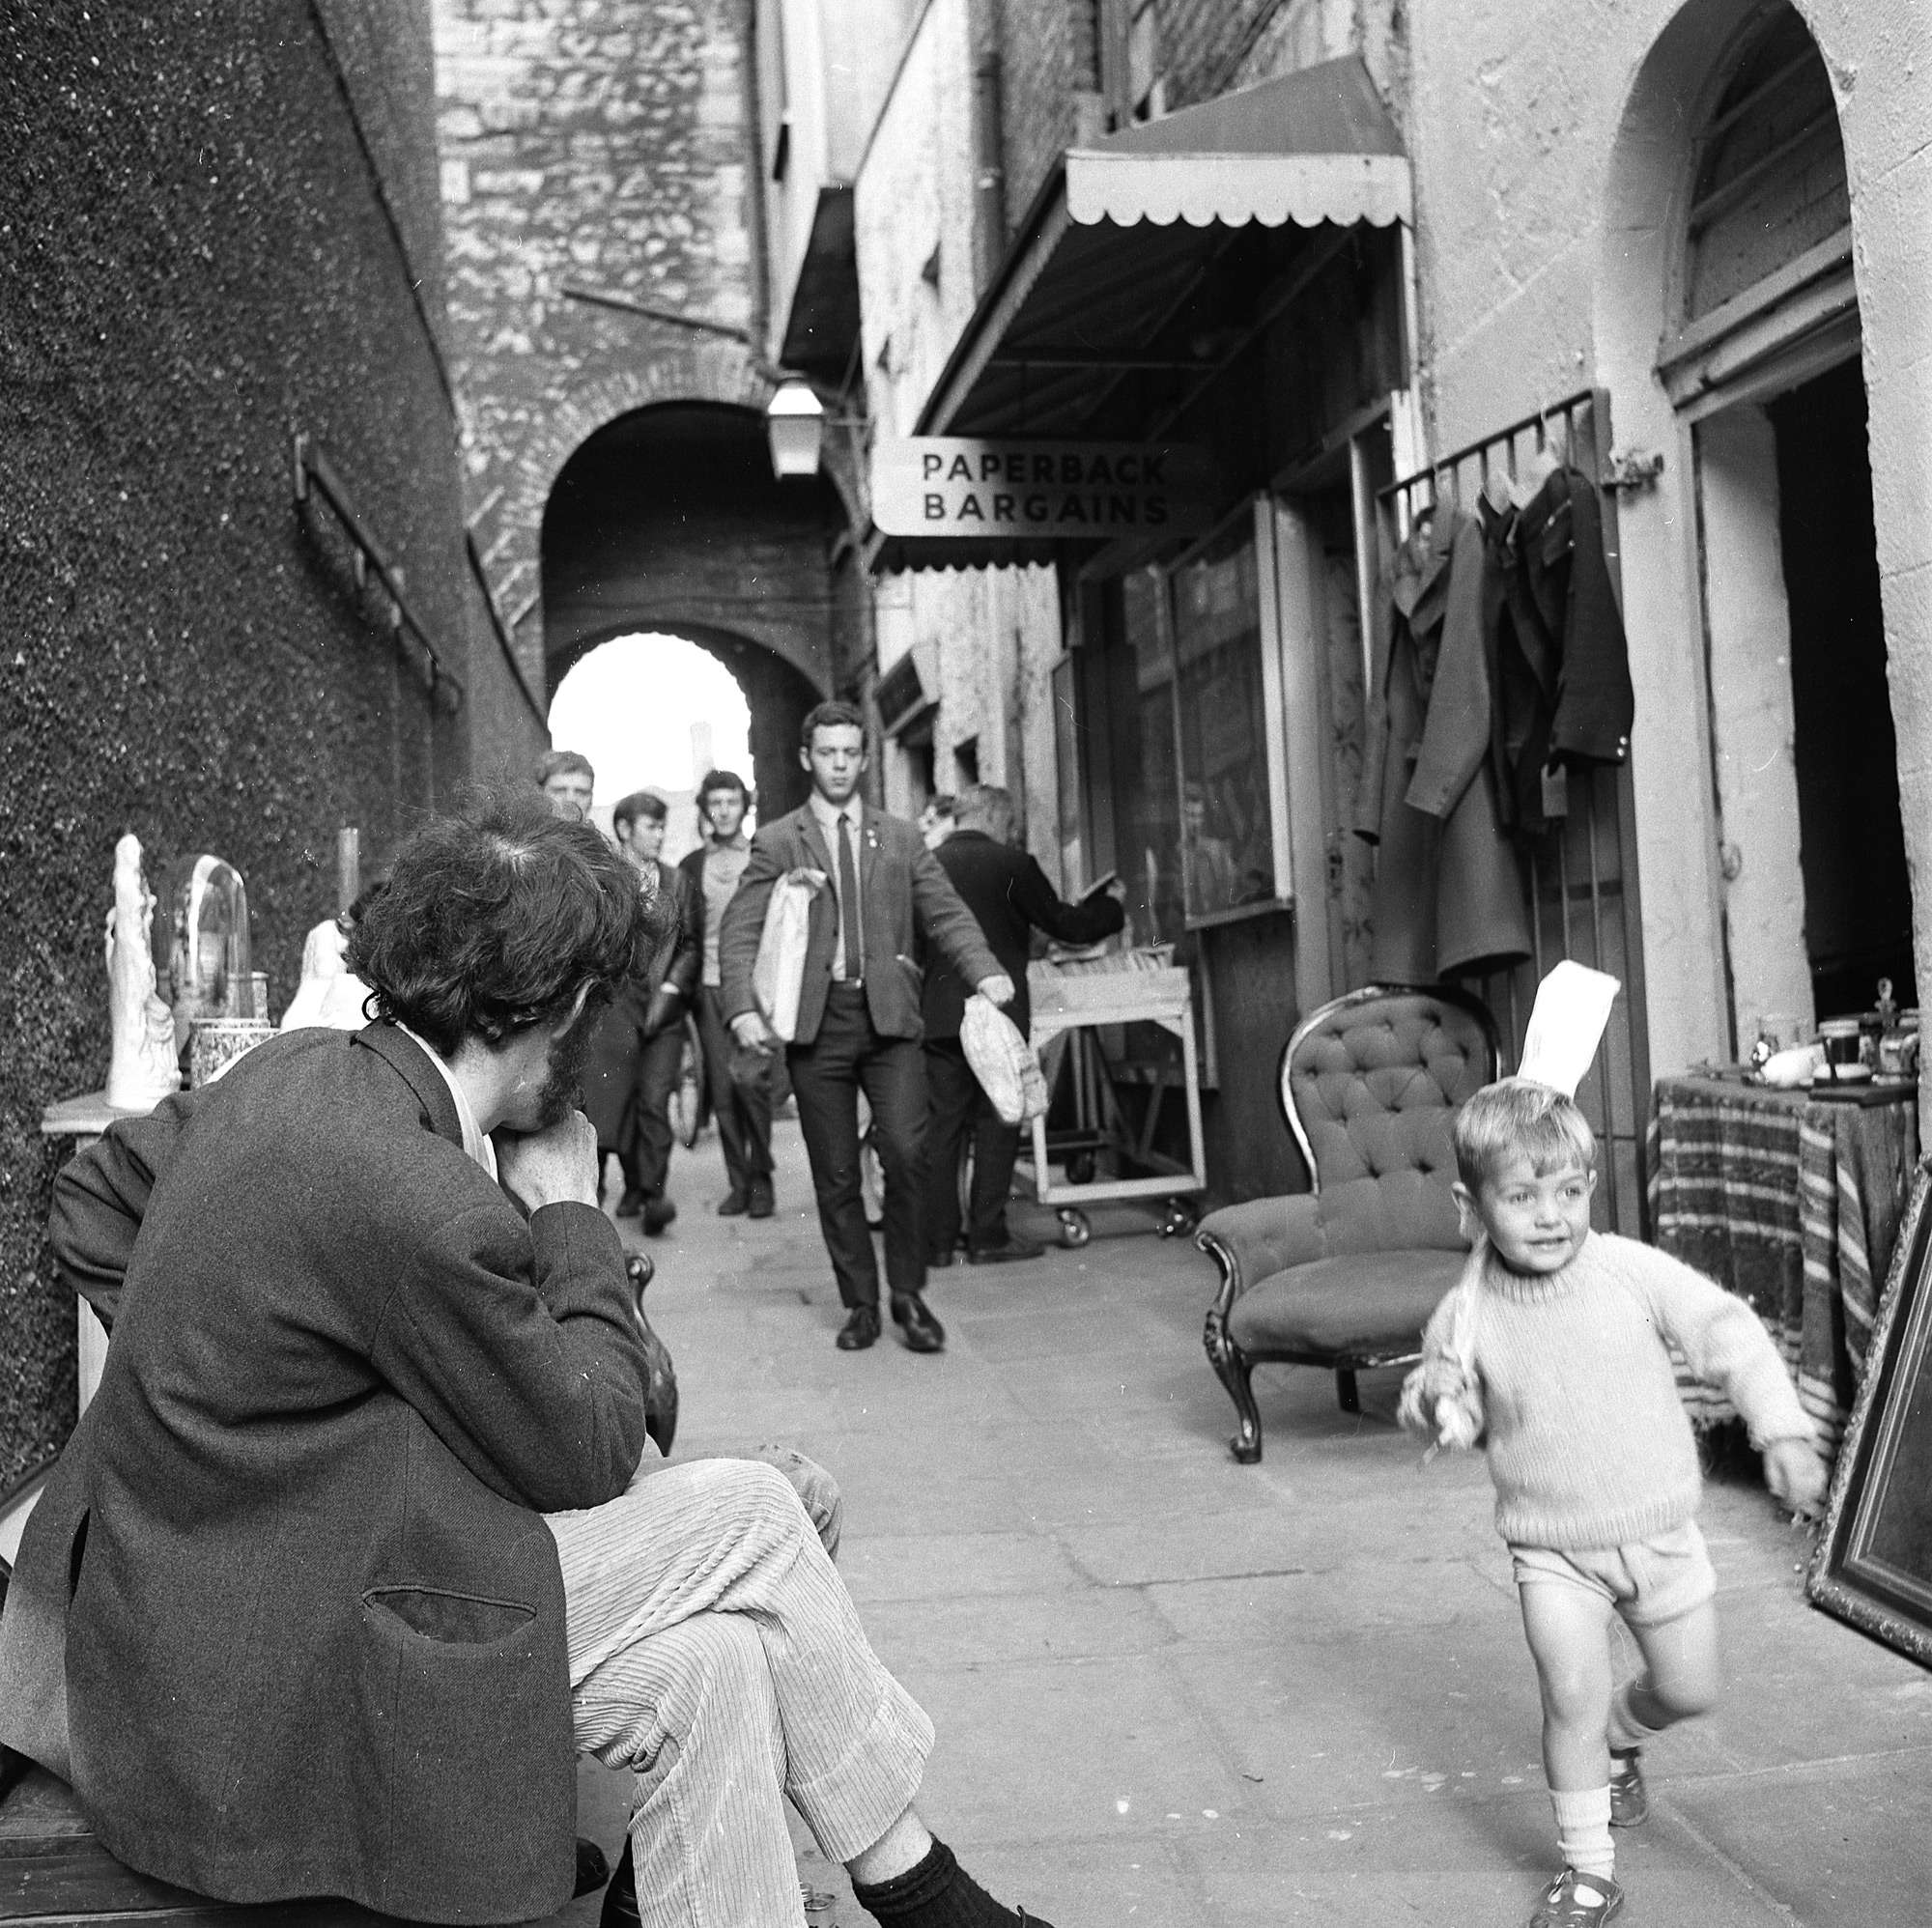 "Dublin, Ireland 1960s ""Cheers my name is Colm Irwin and I was about 3. It was strange how I came across the image it was in the evening had just looked at sky news and for some unknown reason googled images of old Dublin and there was this image a bit surreal seeing yourself in the picture. Haven't really changed a good bit taller and I still have my own teeth ... Cheers."" This photo has now been featured on TheJournal. Photographer: Elinor Wiltshire Date: 1969"